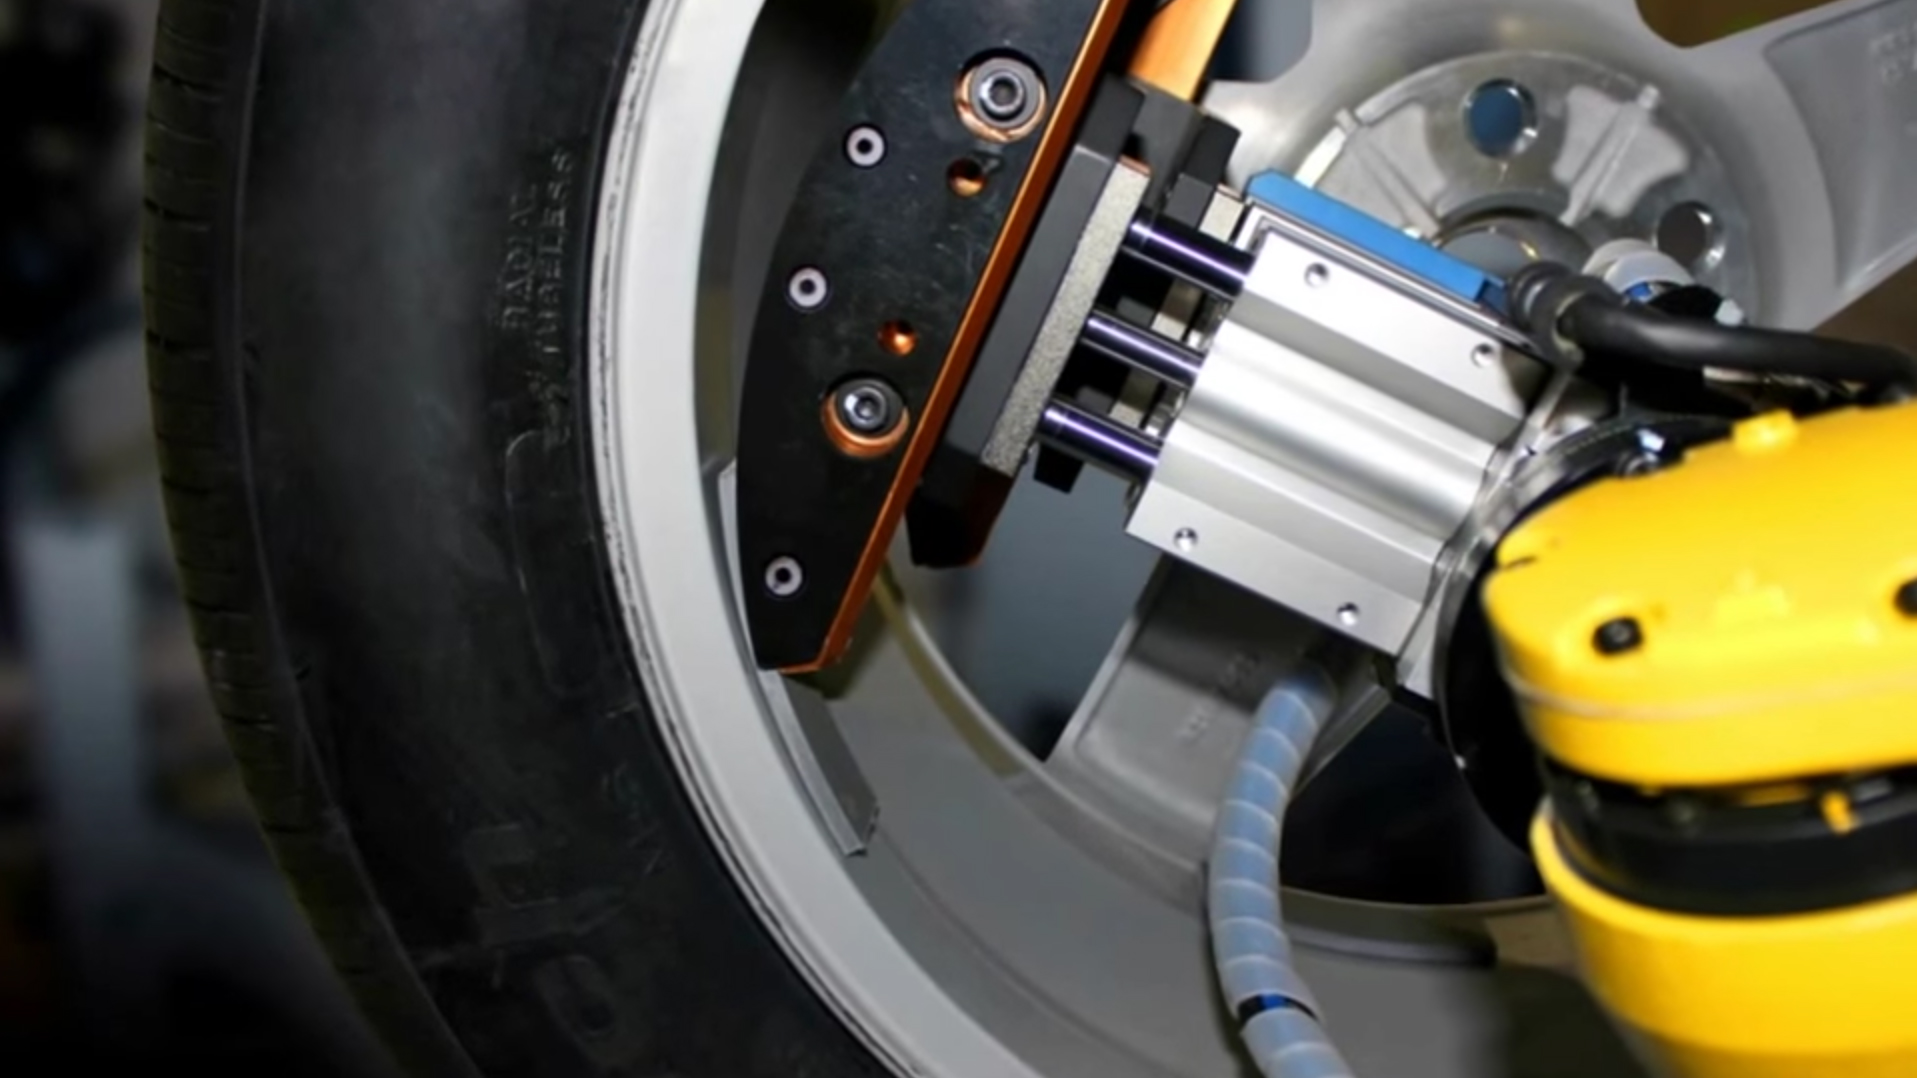 This new machine mounts wheel weights in seconds